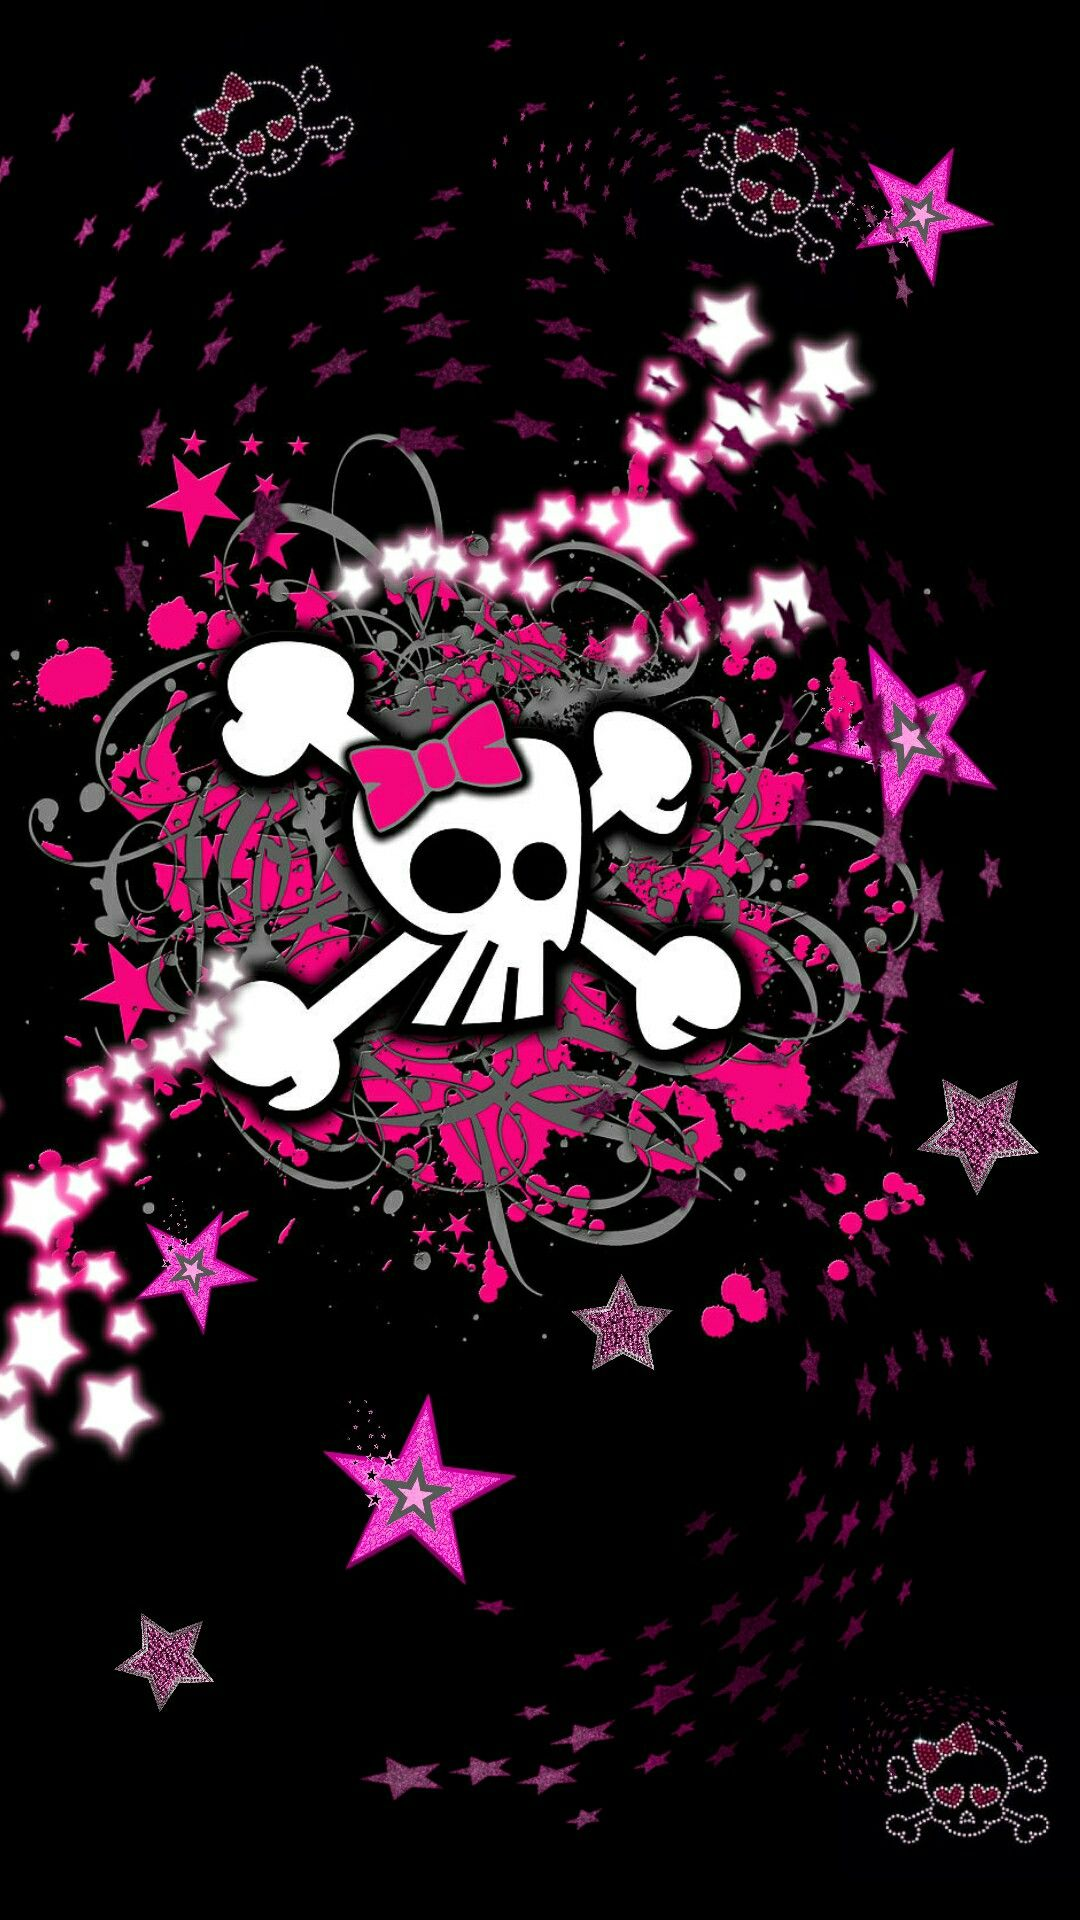 Pin By Jennifer Alaina On Skulls Skull Wallpaper Pink Skull Wallpaper Skull Pictures